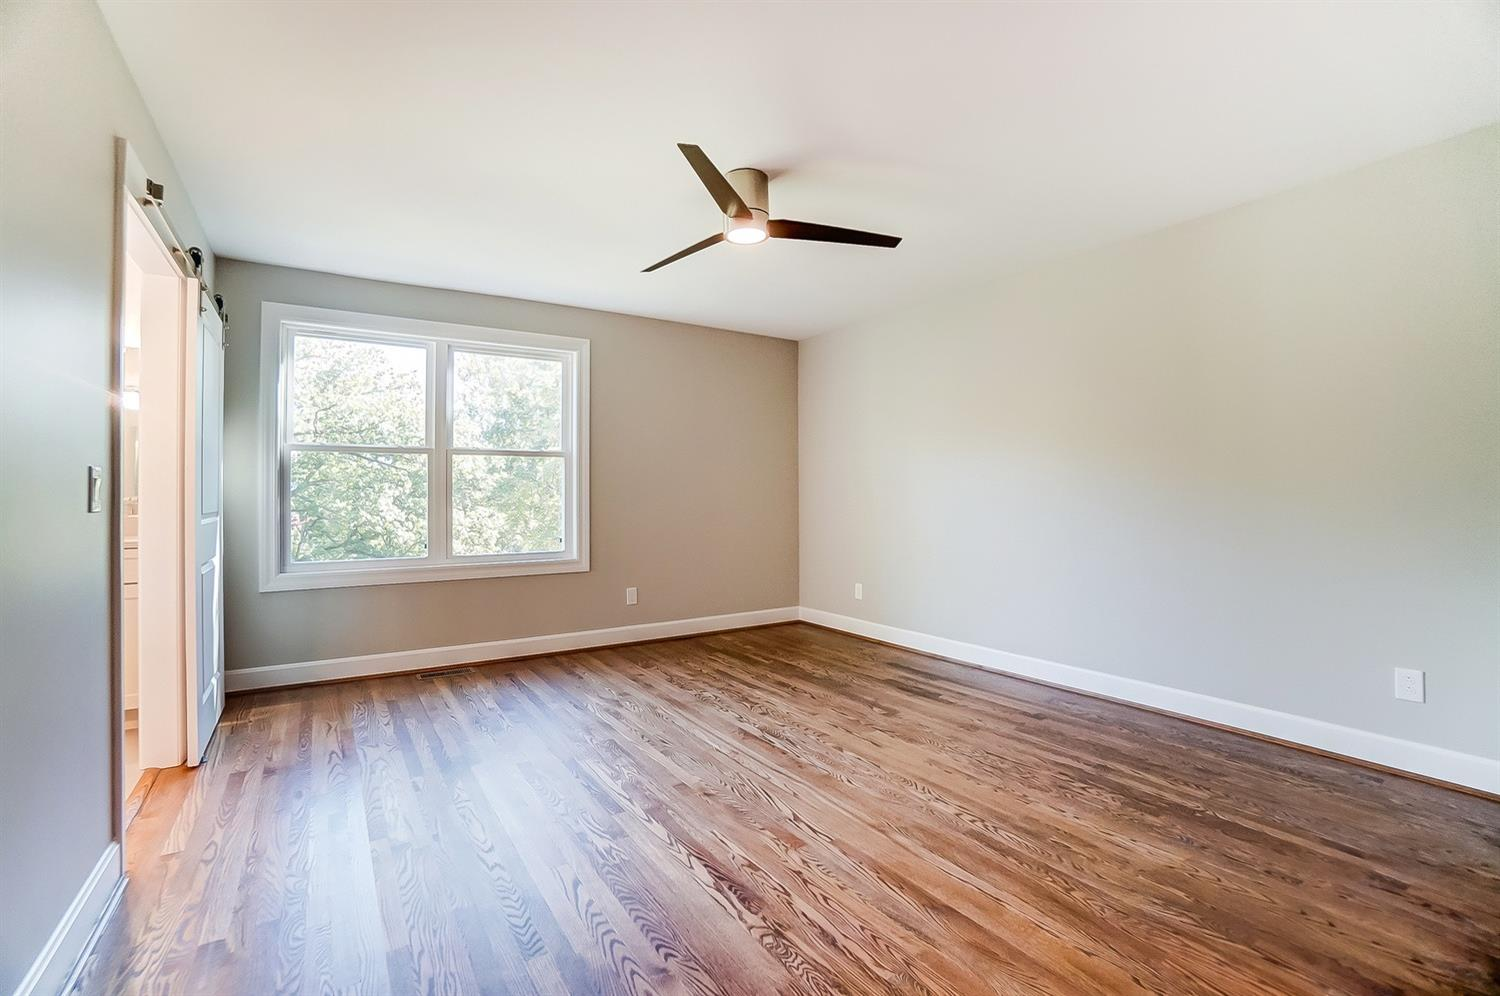 1st floor, Owner's bedroom, alternate view with windows - superb view of the park-like backyard offering seasonal views that can't be beat!